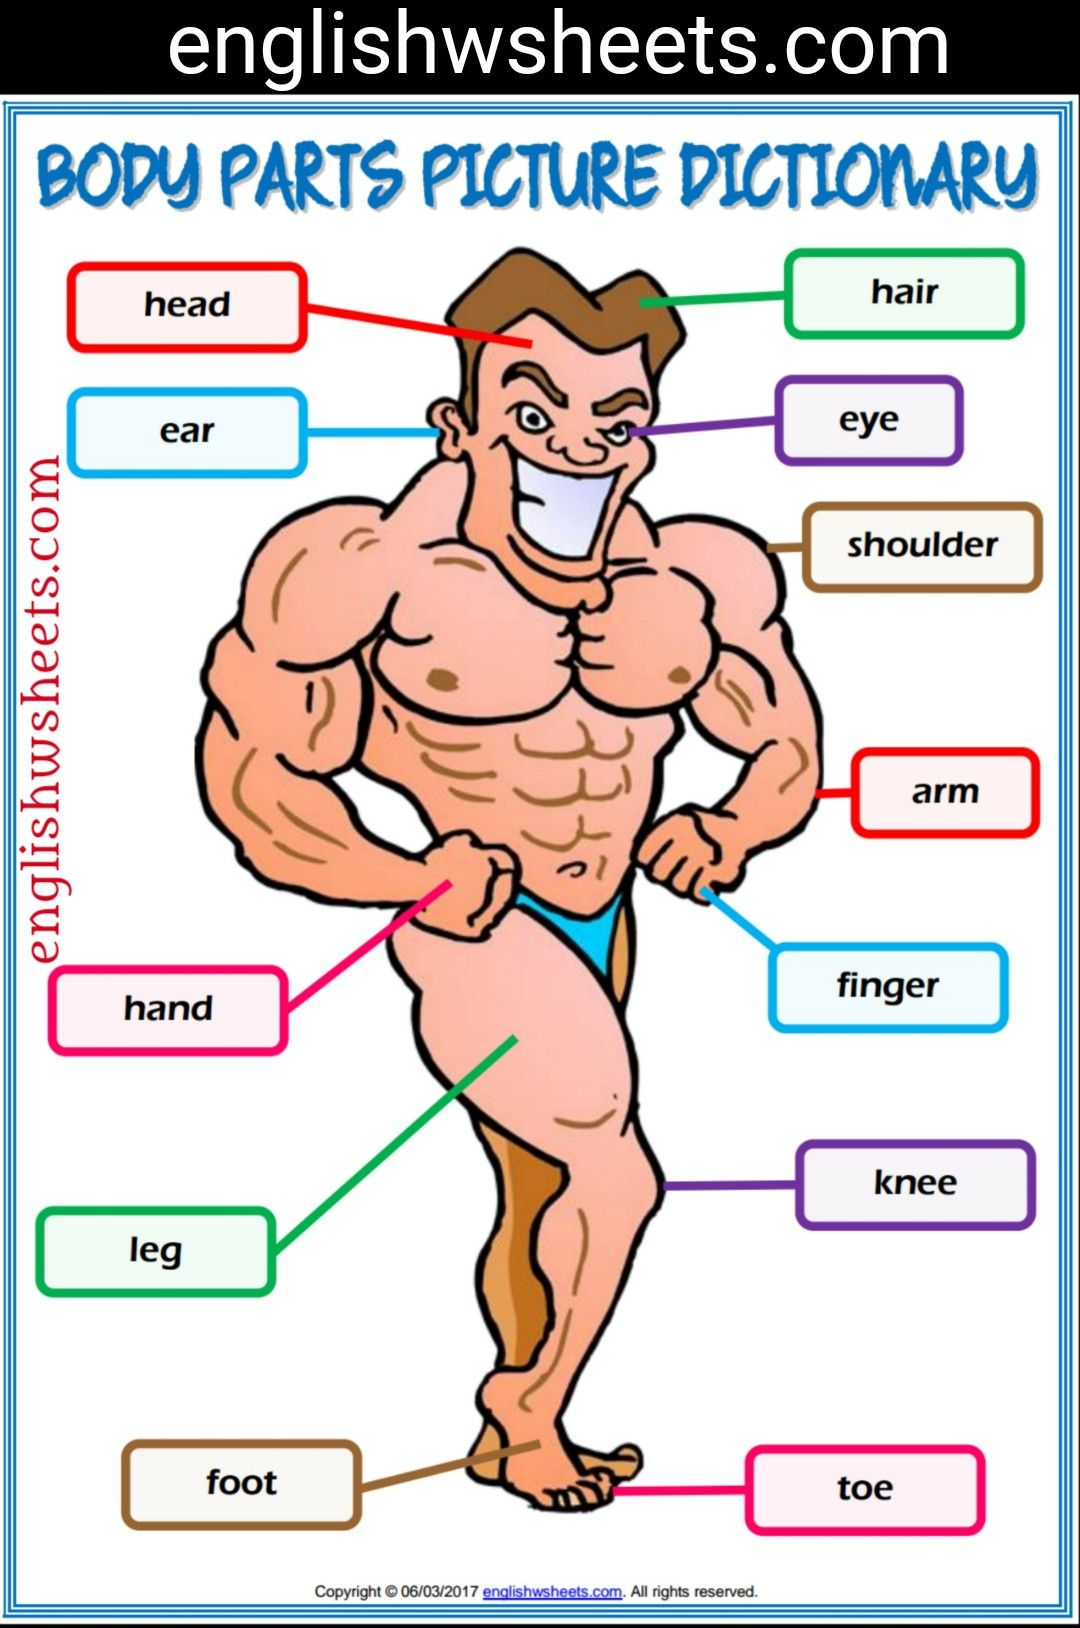 Body Parts Esl Printable Picture Dictionary For Kids Body